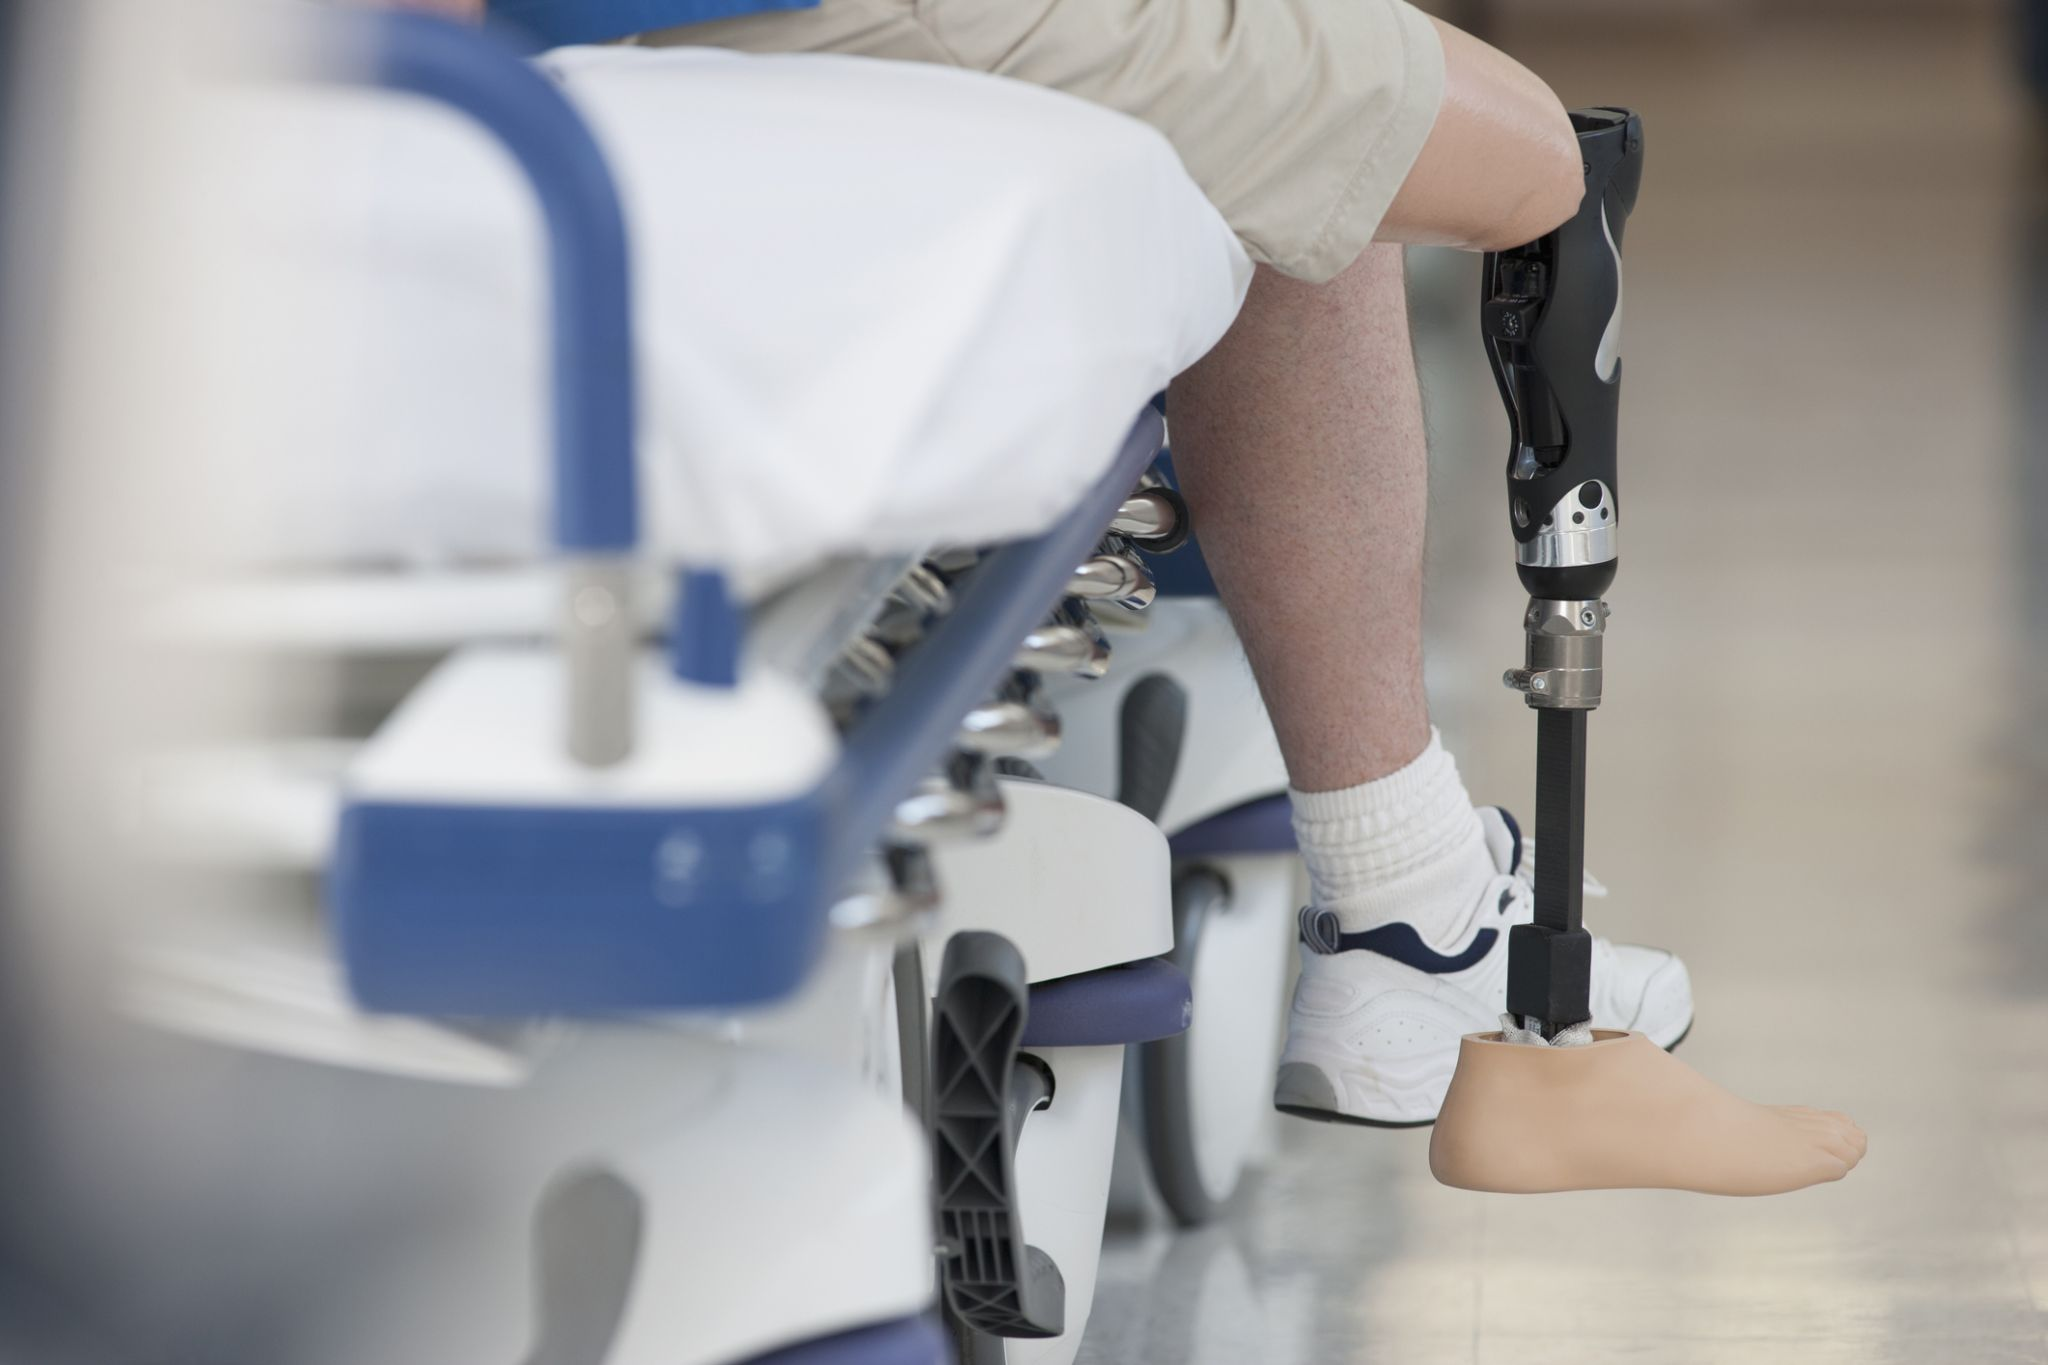 County pays to settle suit by ex-inmate over prosthetic leg